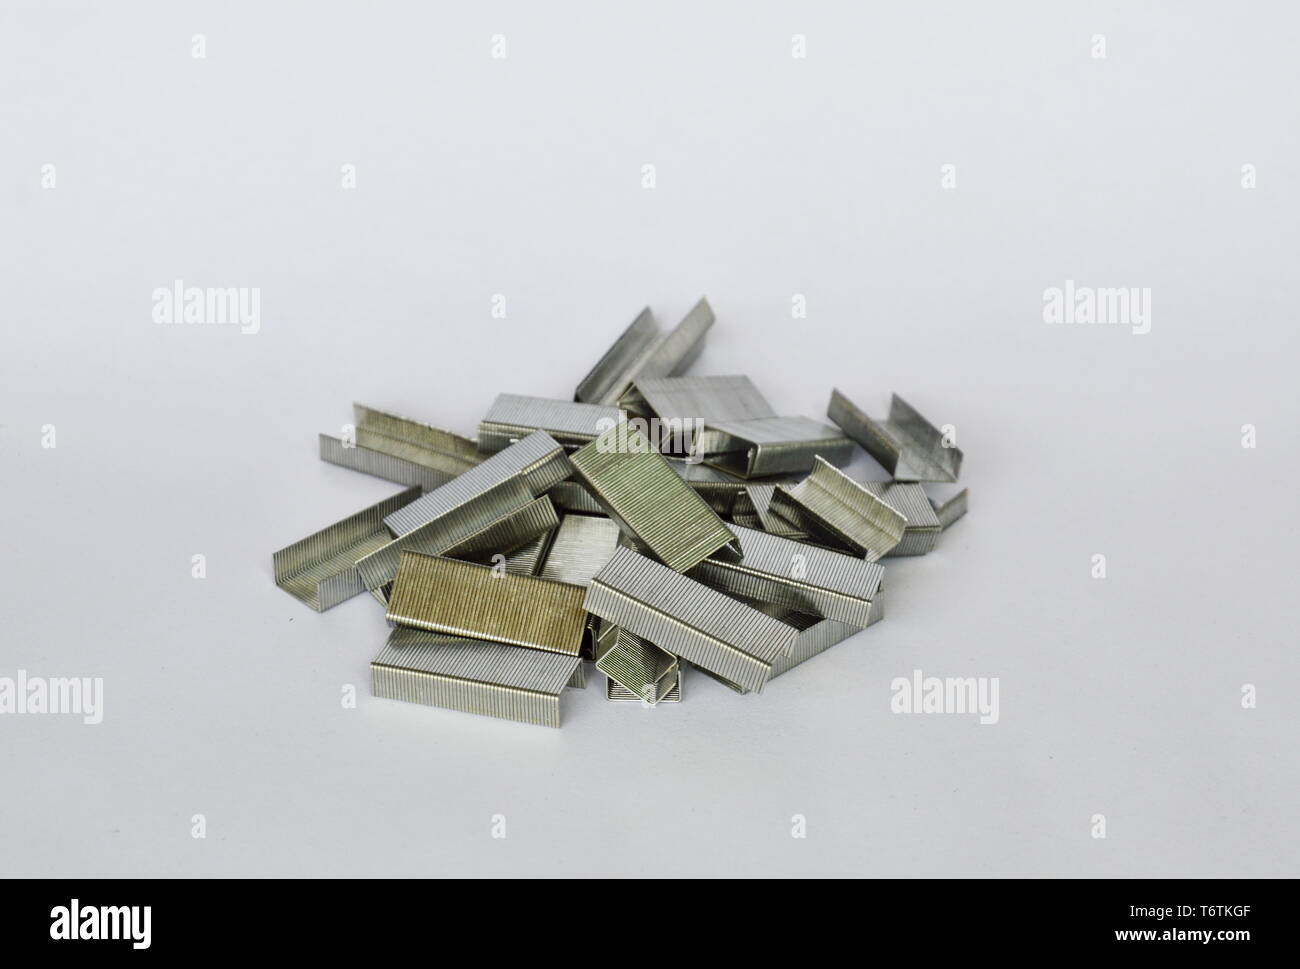 stapler wire for refill on white background - Stock Image